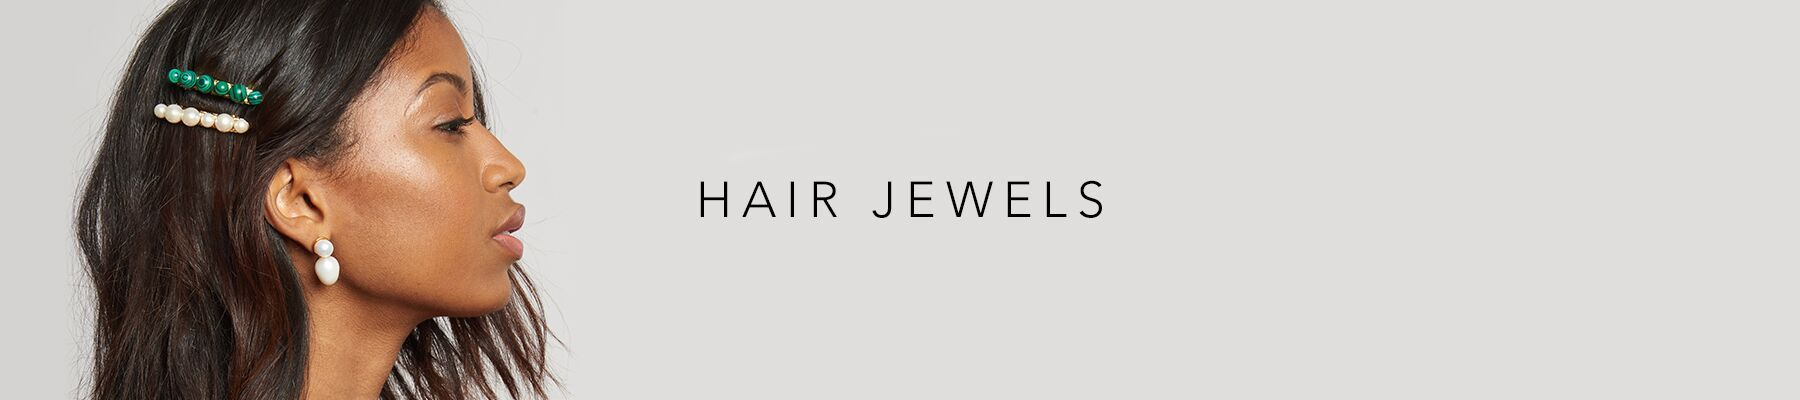 Hair Jewels Under $100